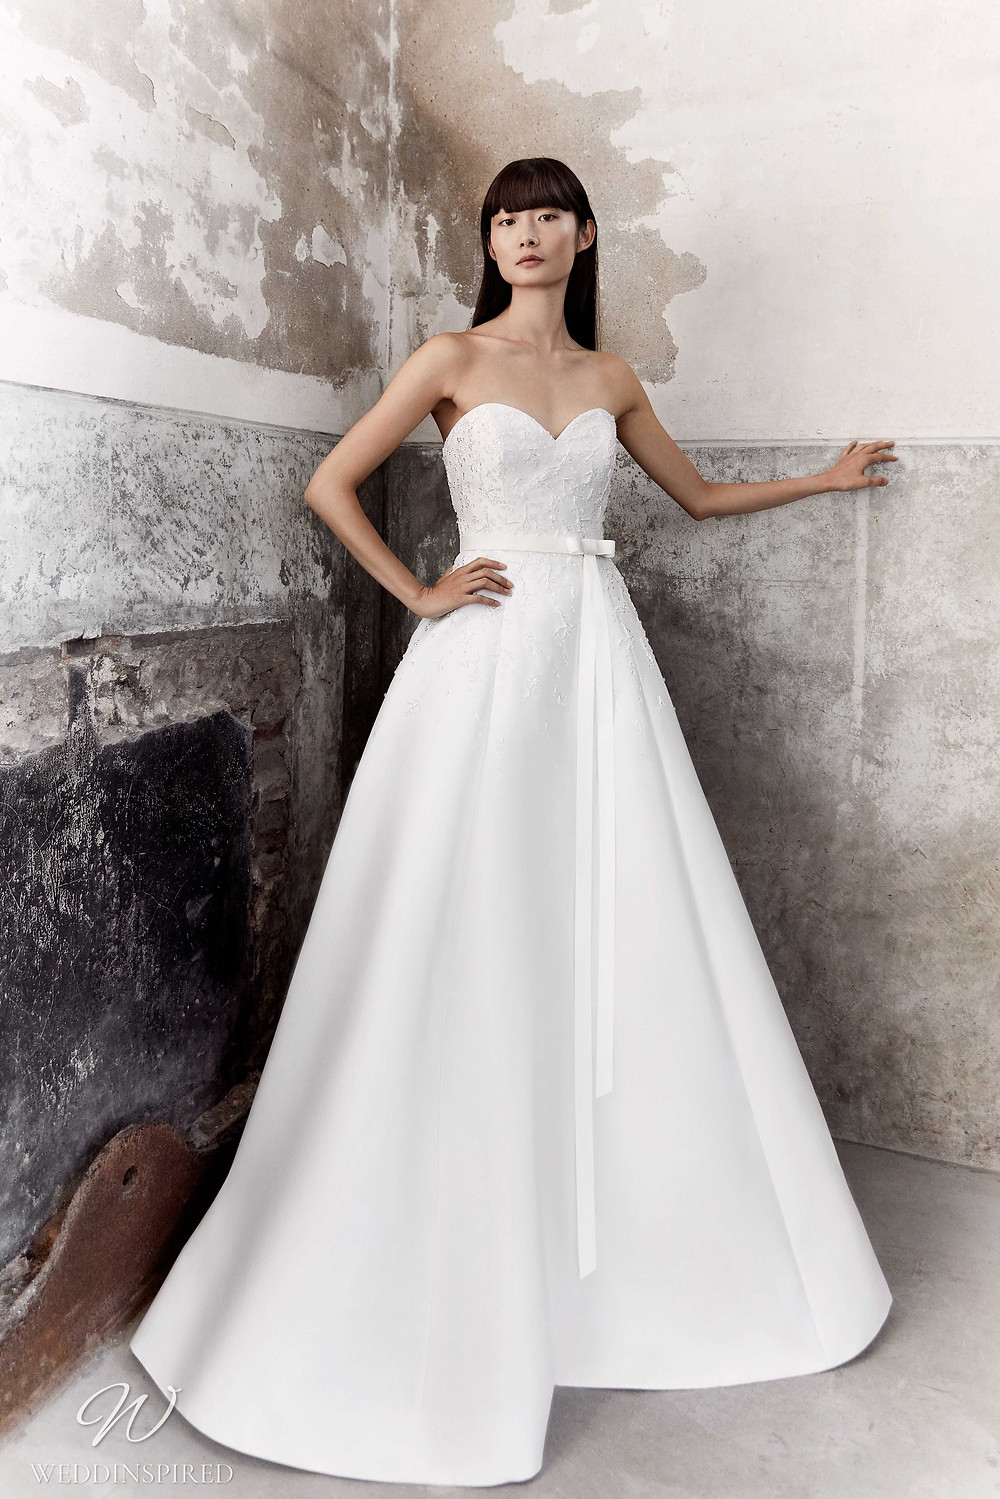 A Viktor & Rolf Fall/Winter 2021 simple strapless ball gown wedding dress with a sweetheart neckline